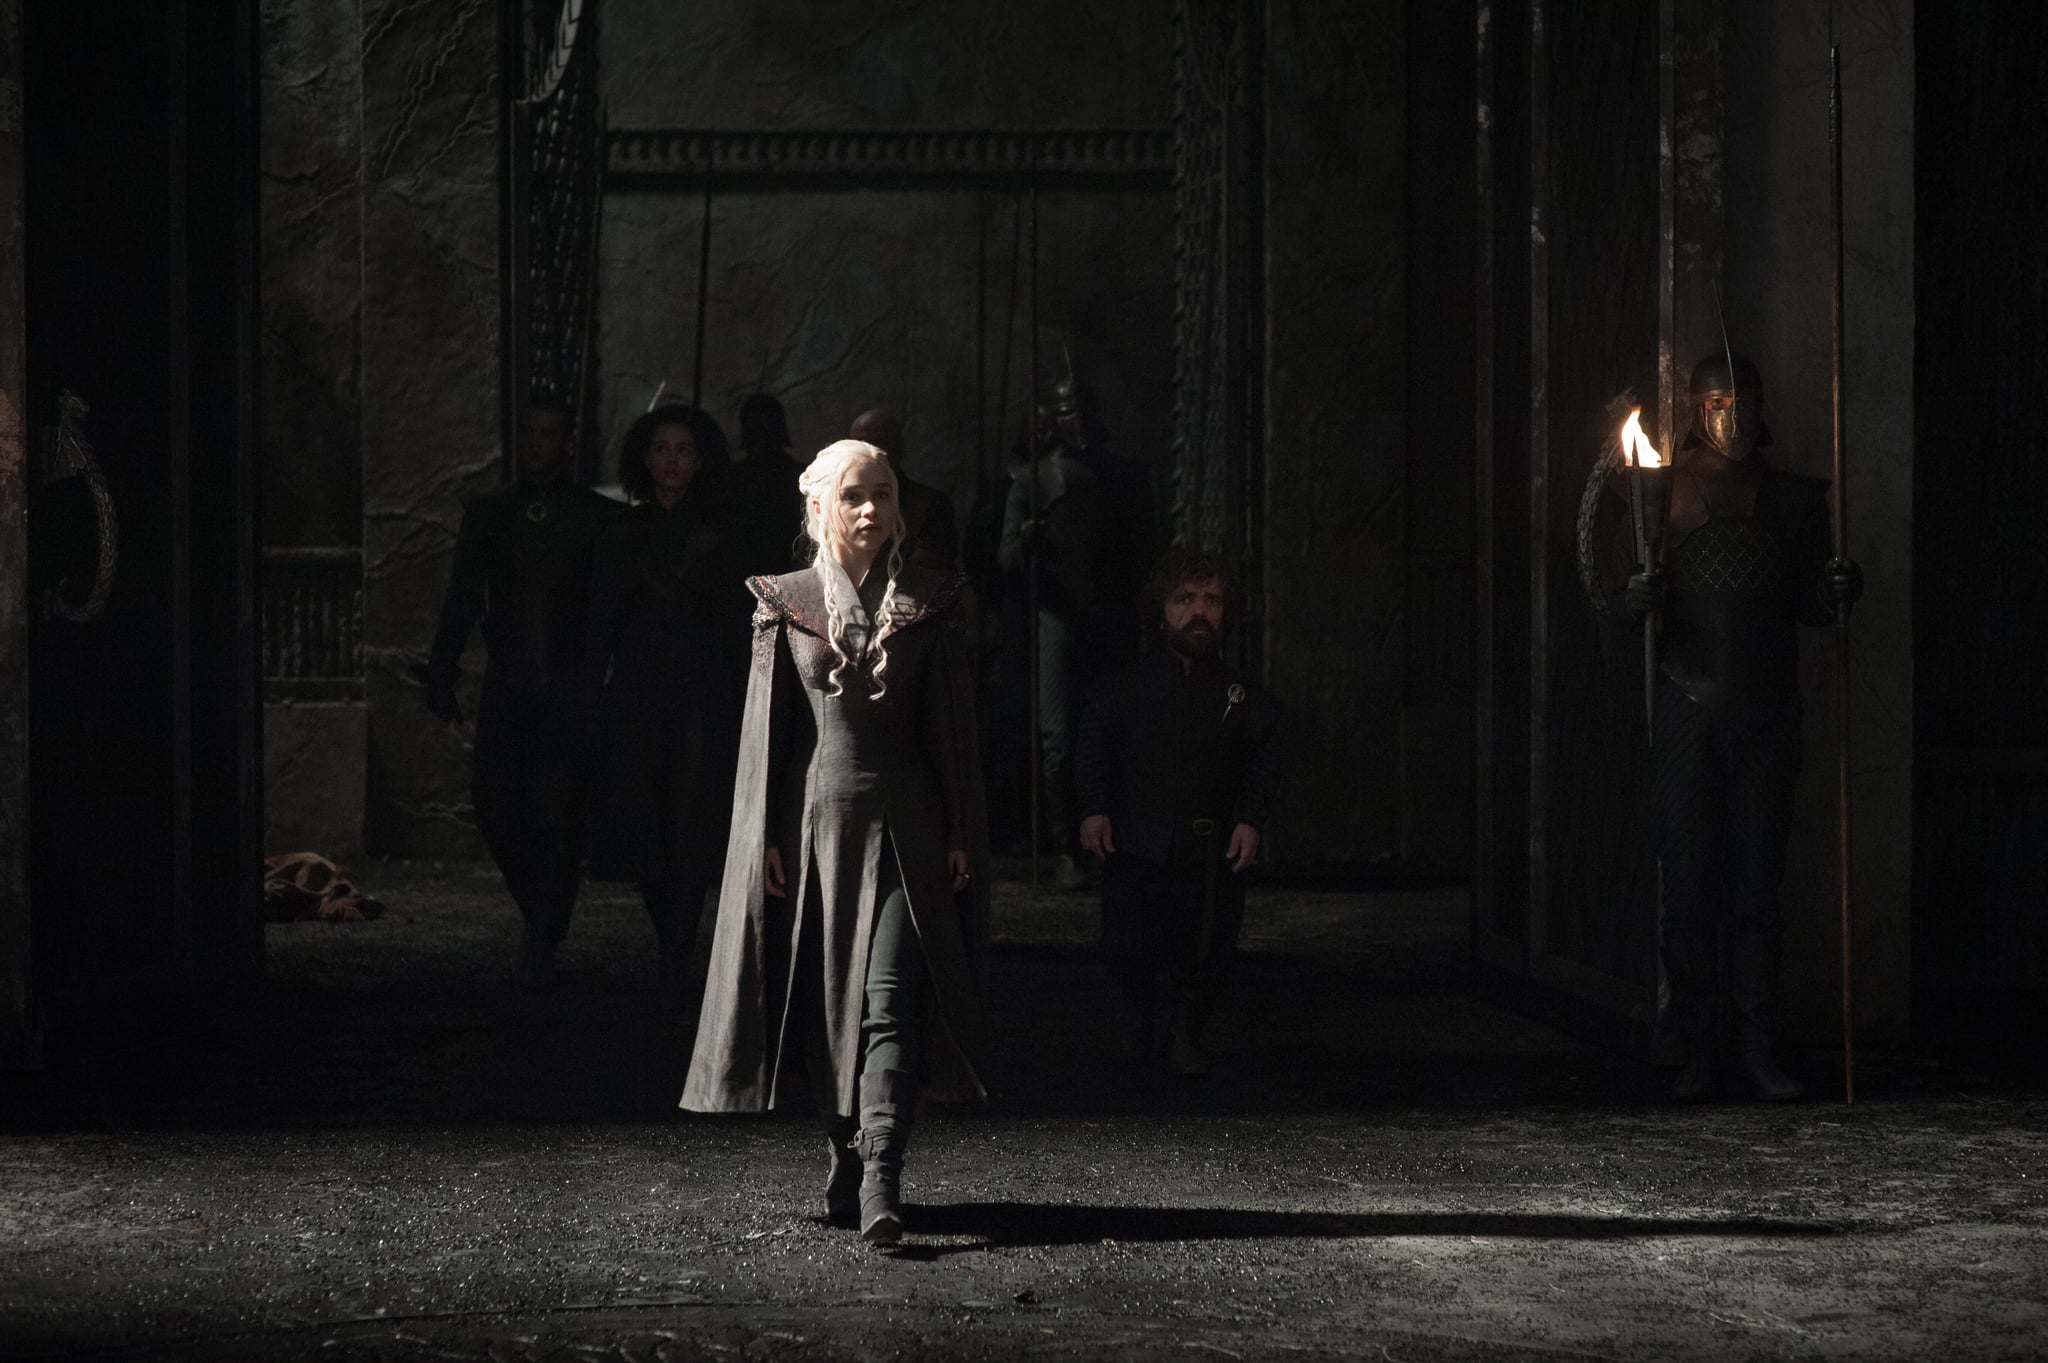 Oh, So This Is Why Season 7 of Game of Thrones Is Shorter Than Usual